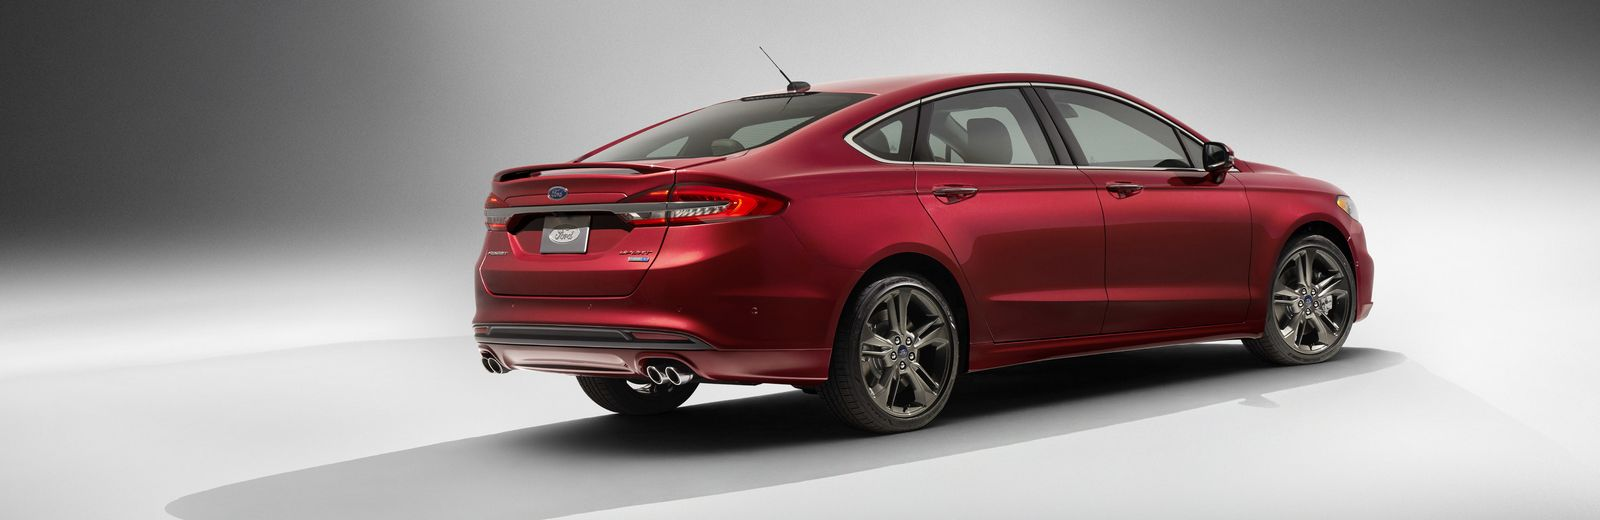 Ford Cancelled The Planned Redesign For The 2020 Fusion